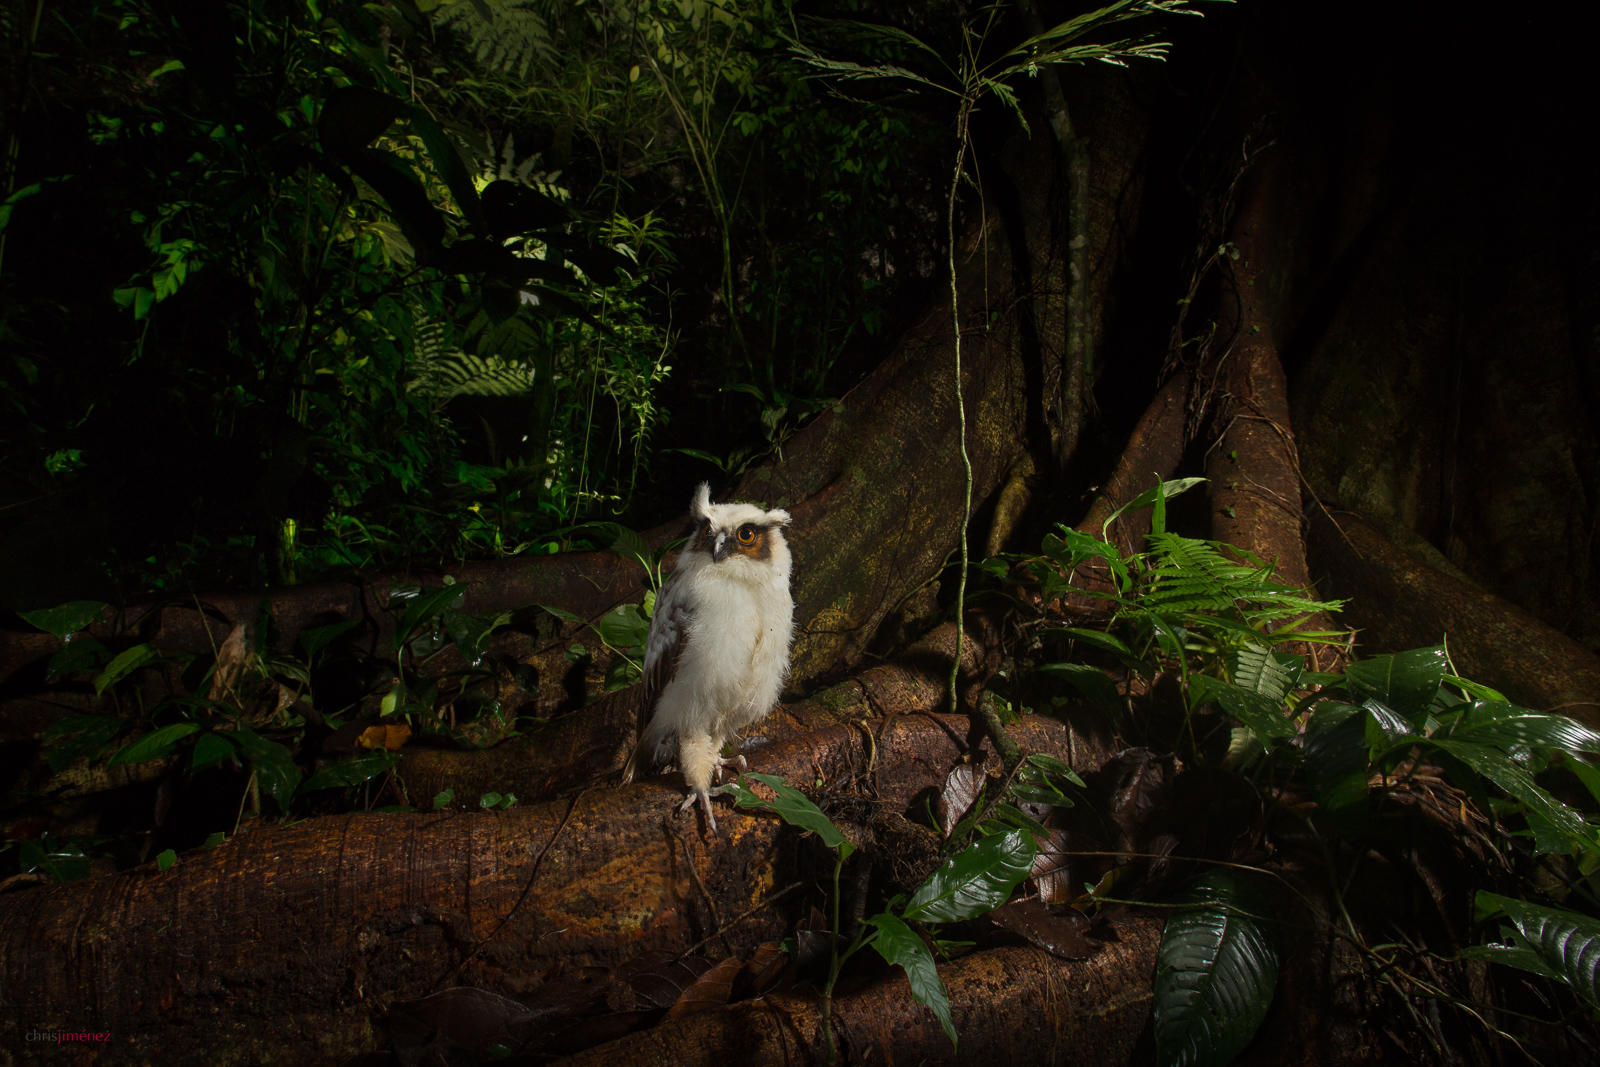 Crested Owl (Lophostrix cristata) owlet perched on the ground at night at the lowlands of Costa Rica